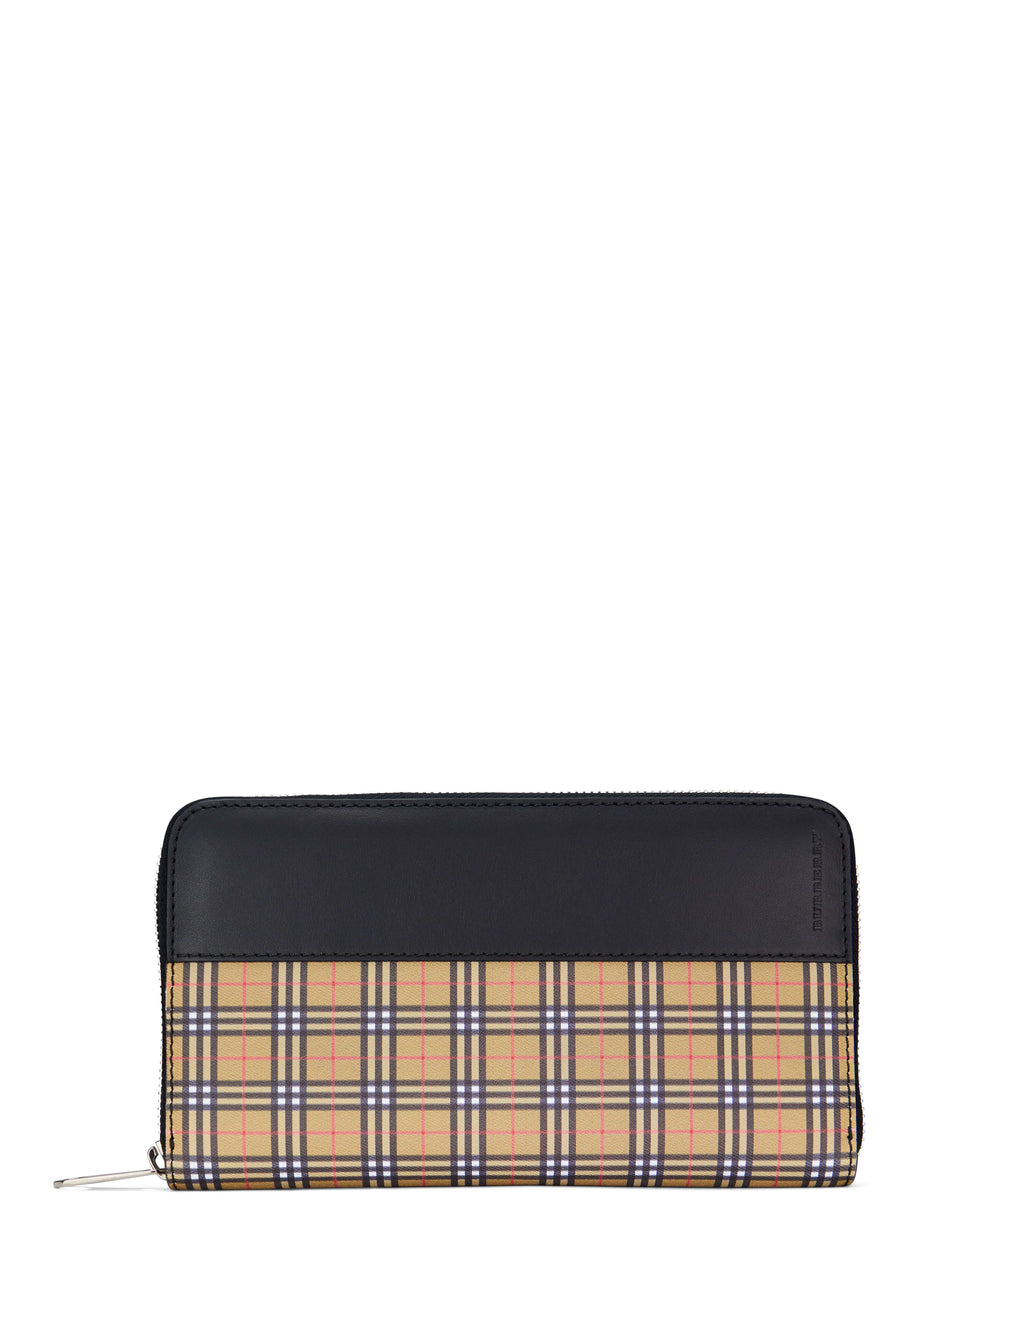 Burberry Men's Giulio Fashion Antique Yellow Small Scale Check Zip-Around Wallet 407805970450